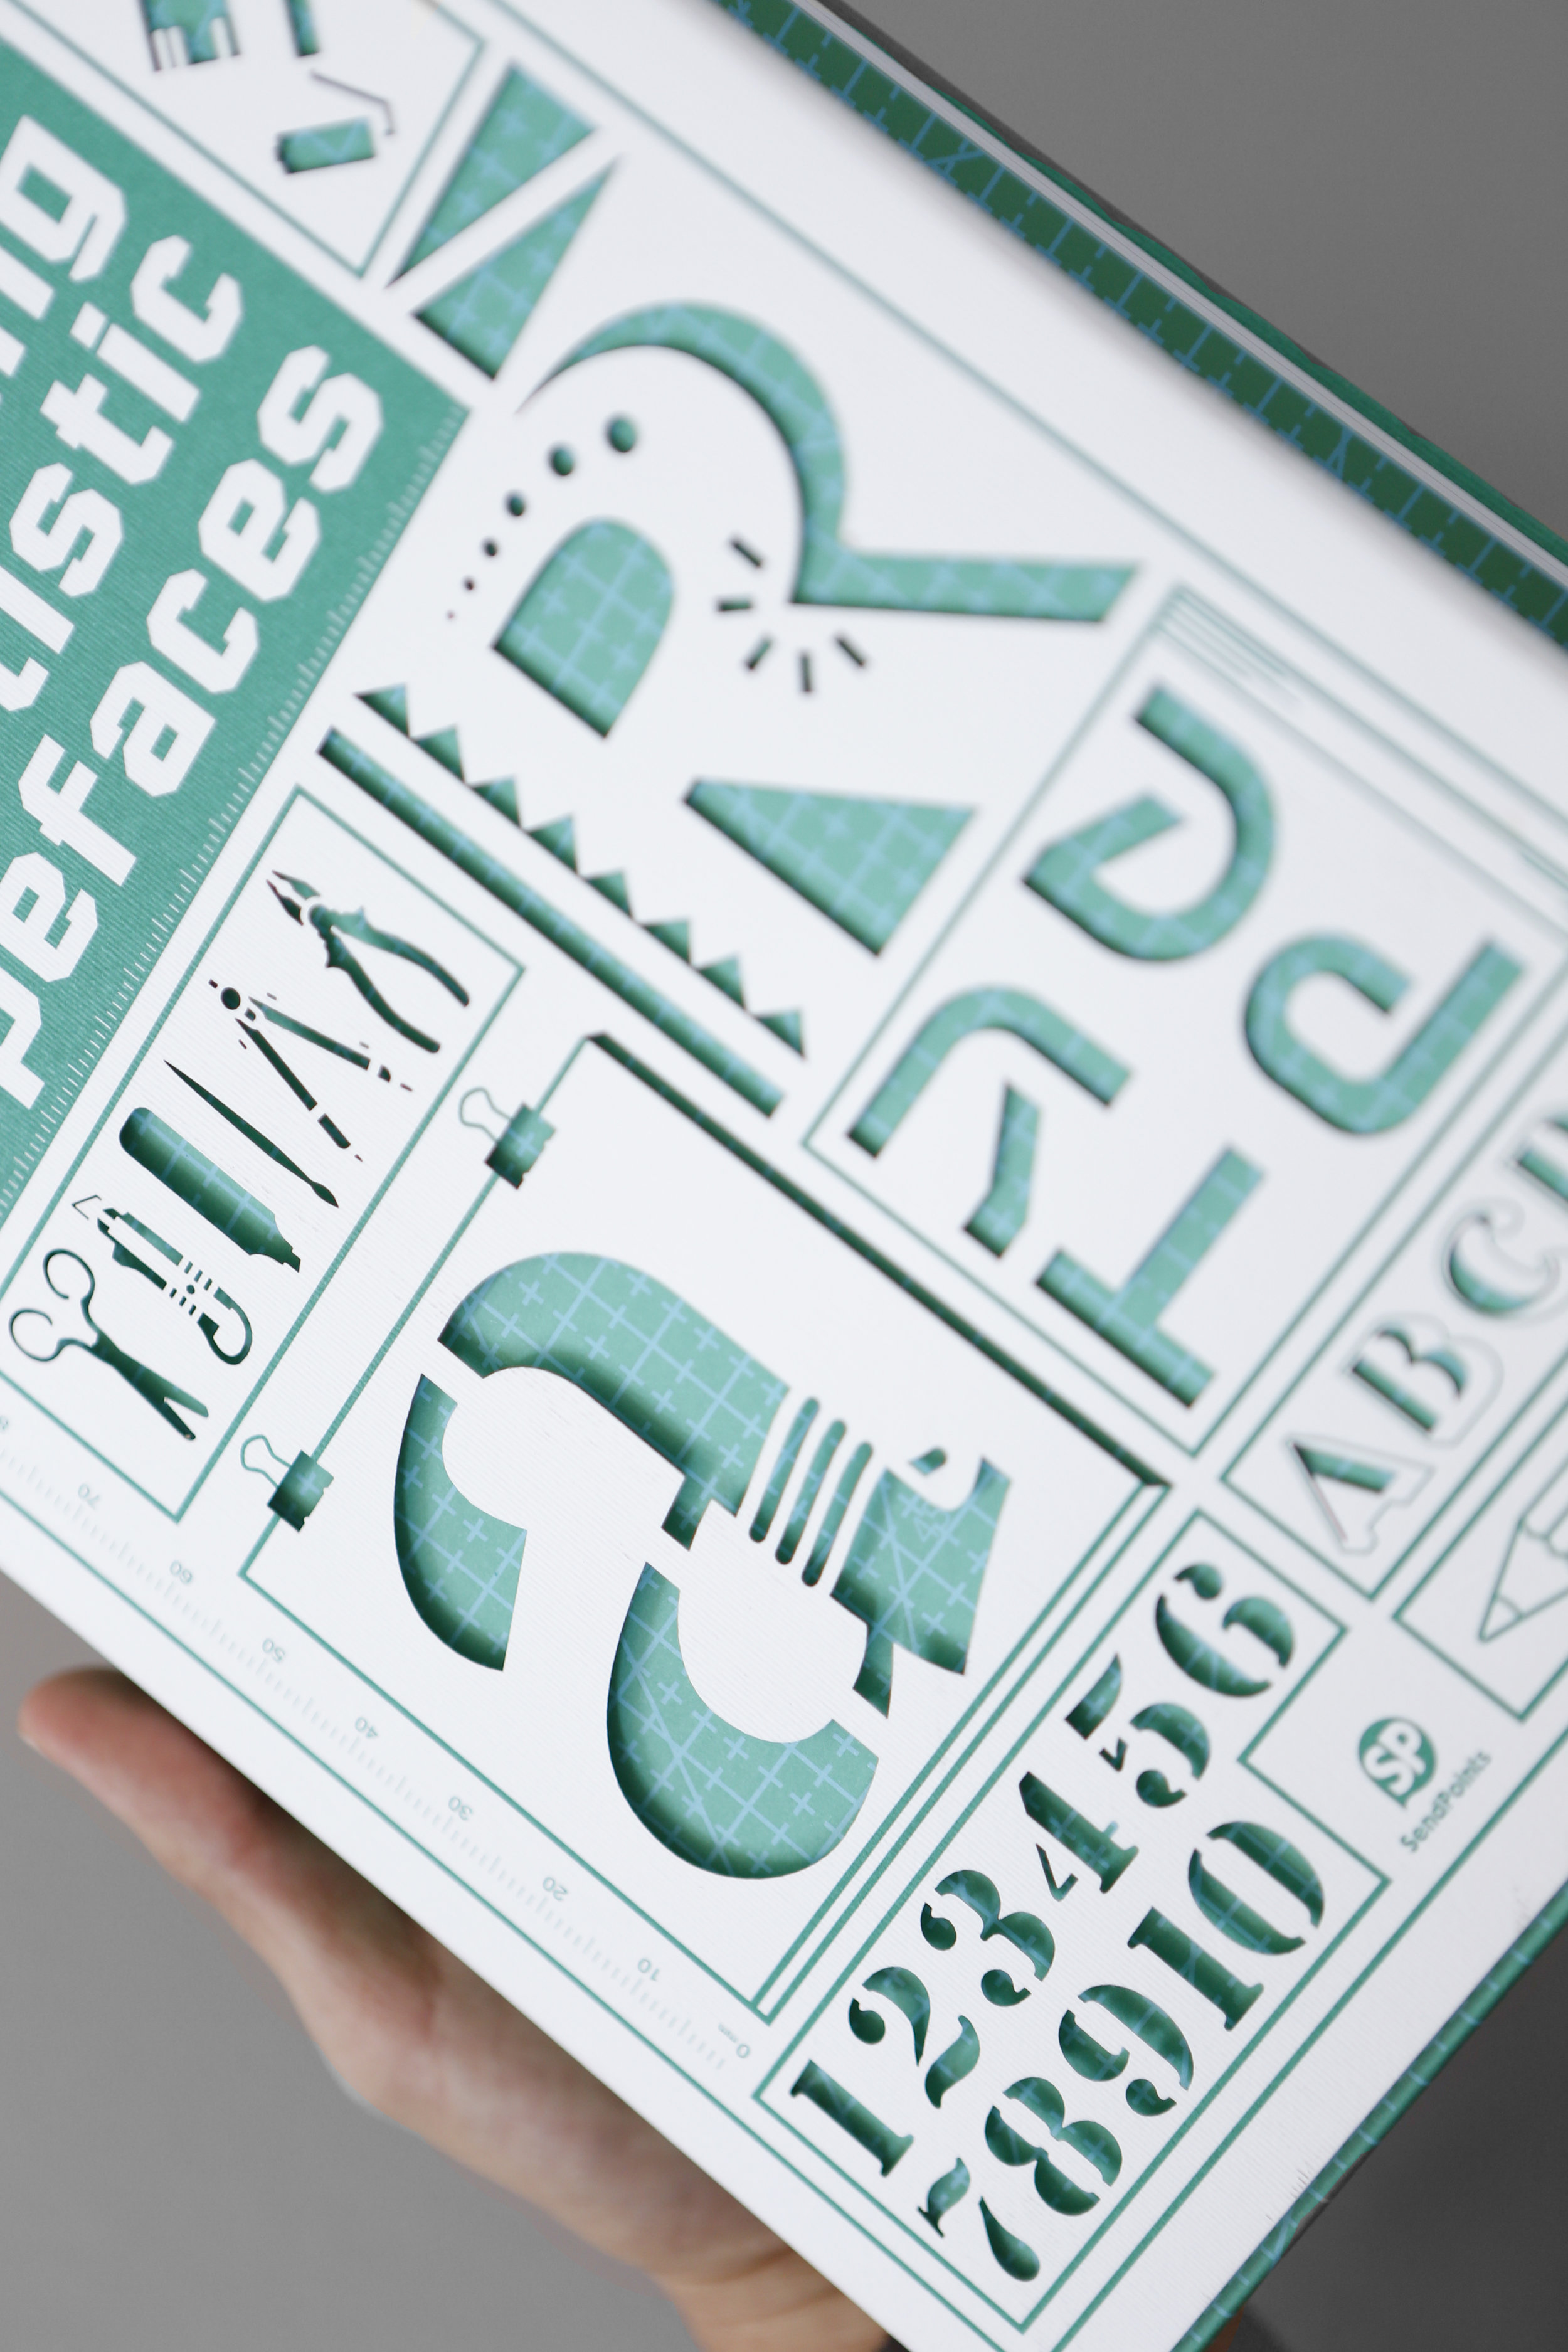 the-making-of-artistic-typeface (3).jpg